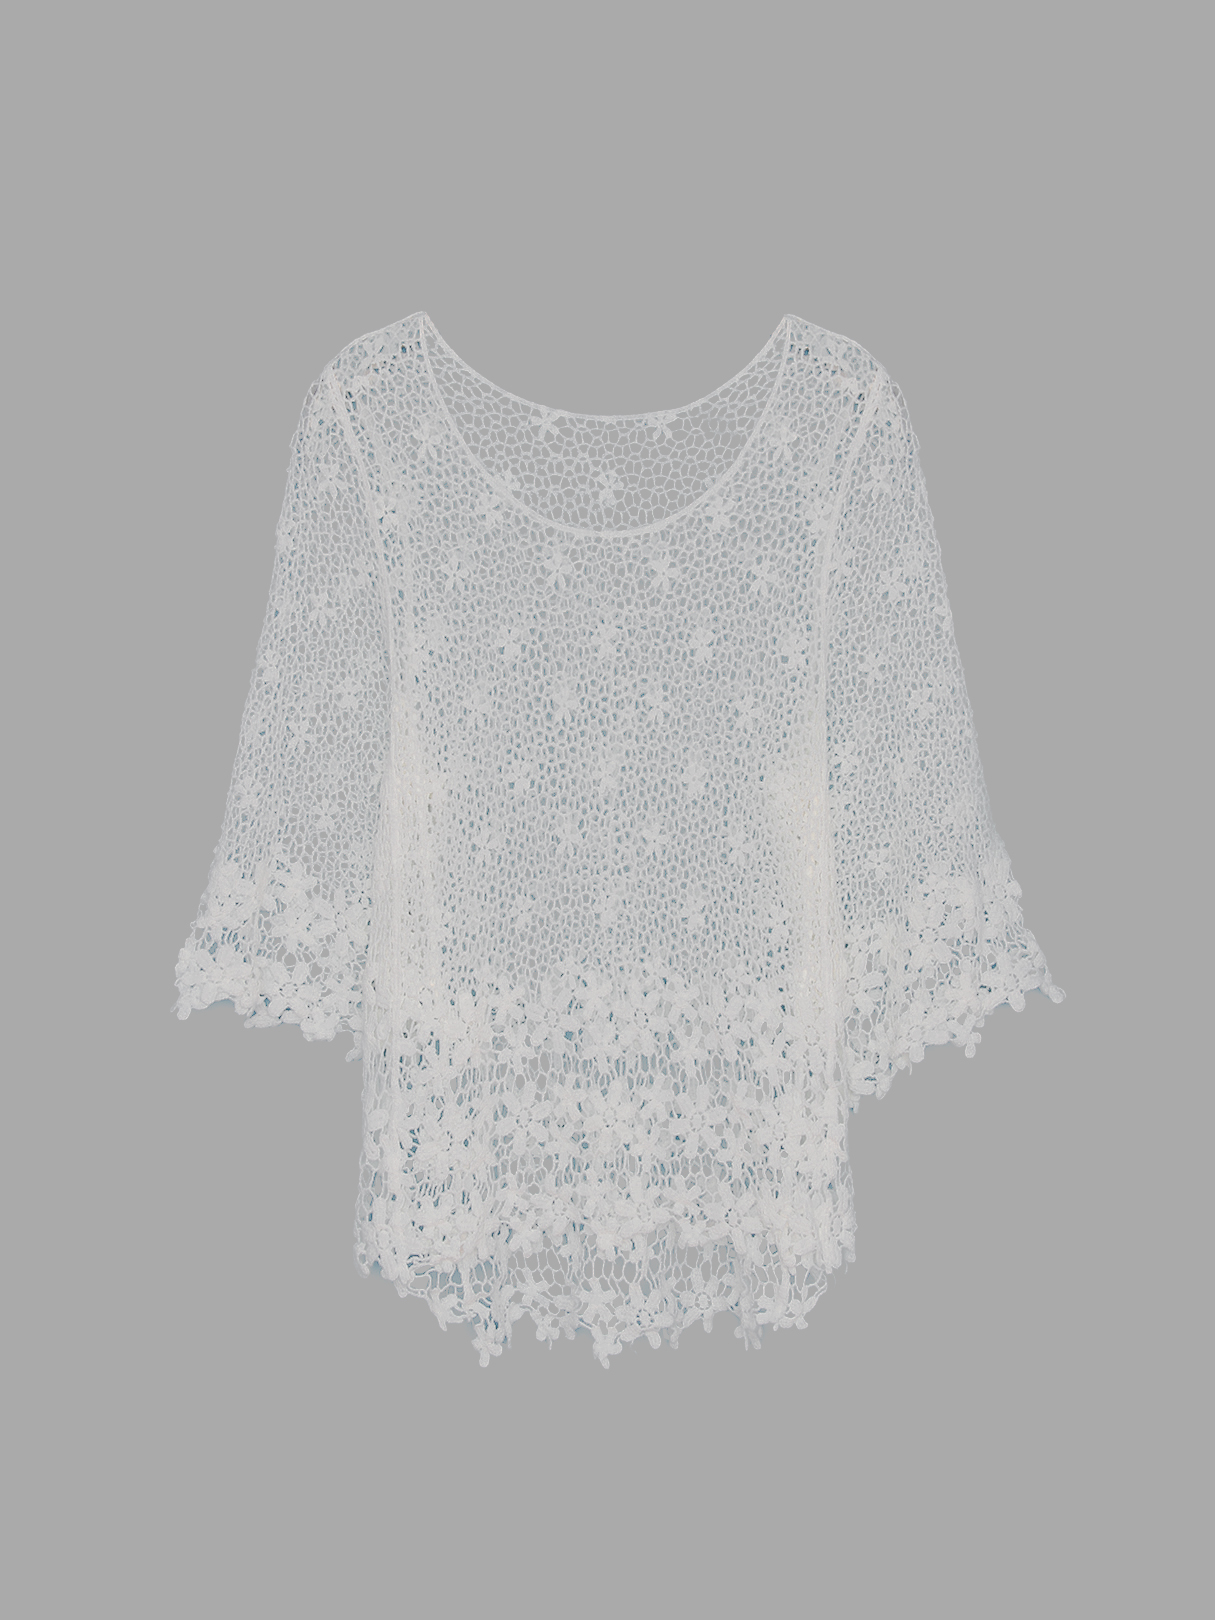 Hollow Out Top with 1/2 Length Sleeves